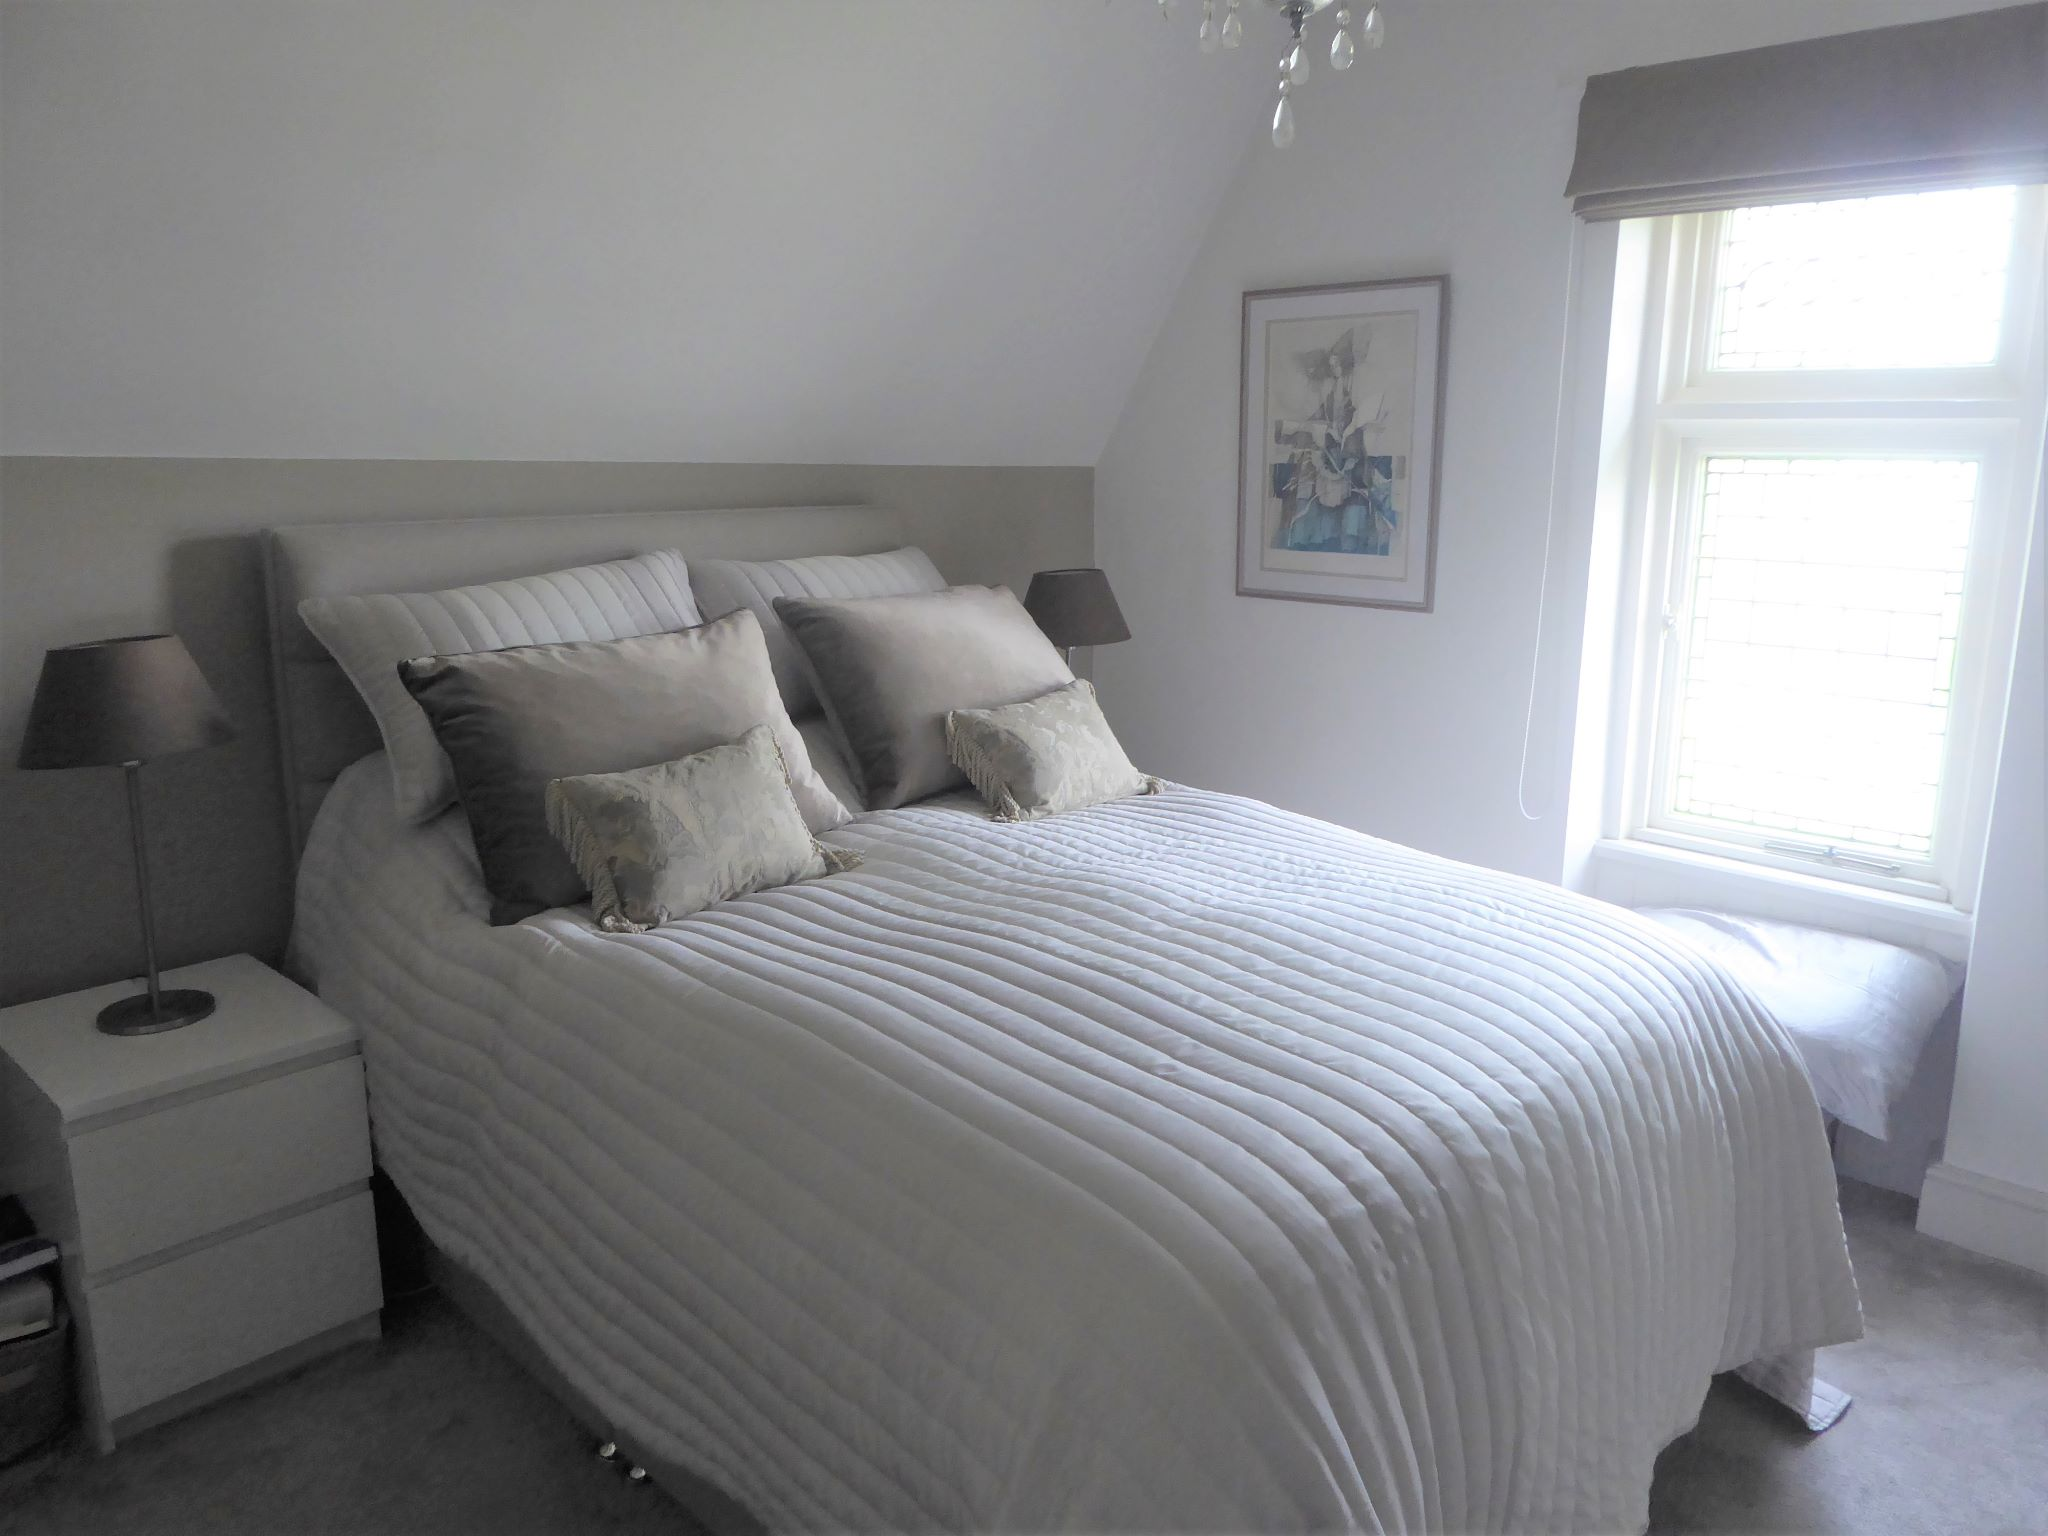 2 bedroom cottage house SSTC in Abergele - Photograph 12